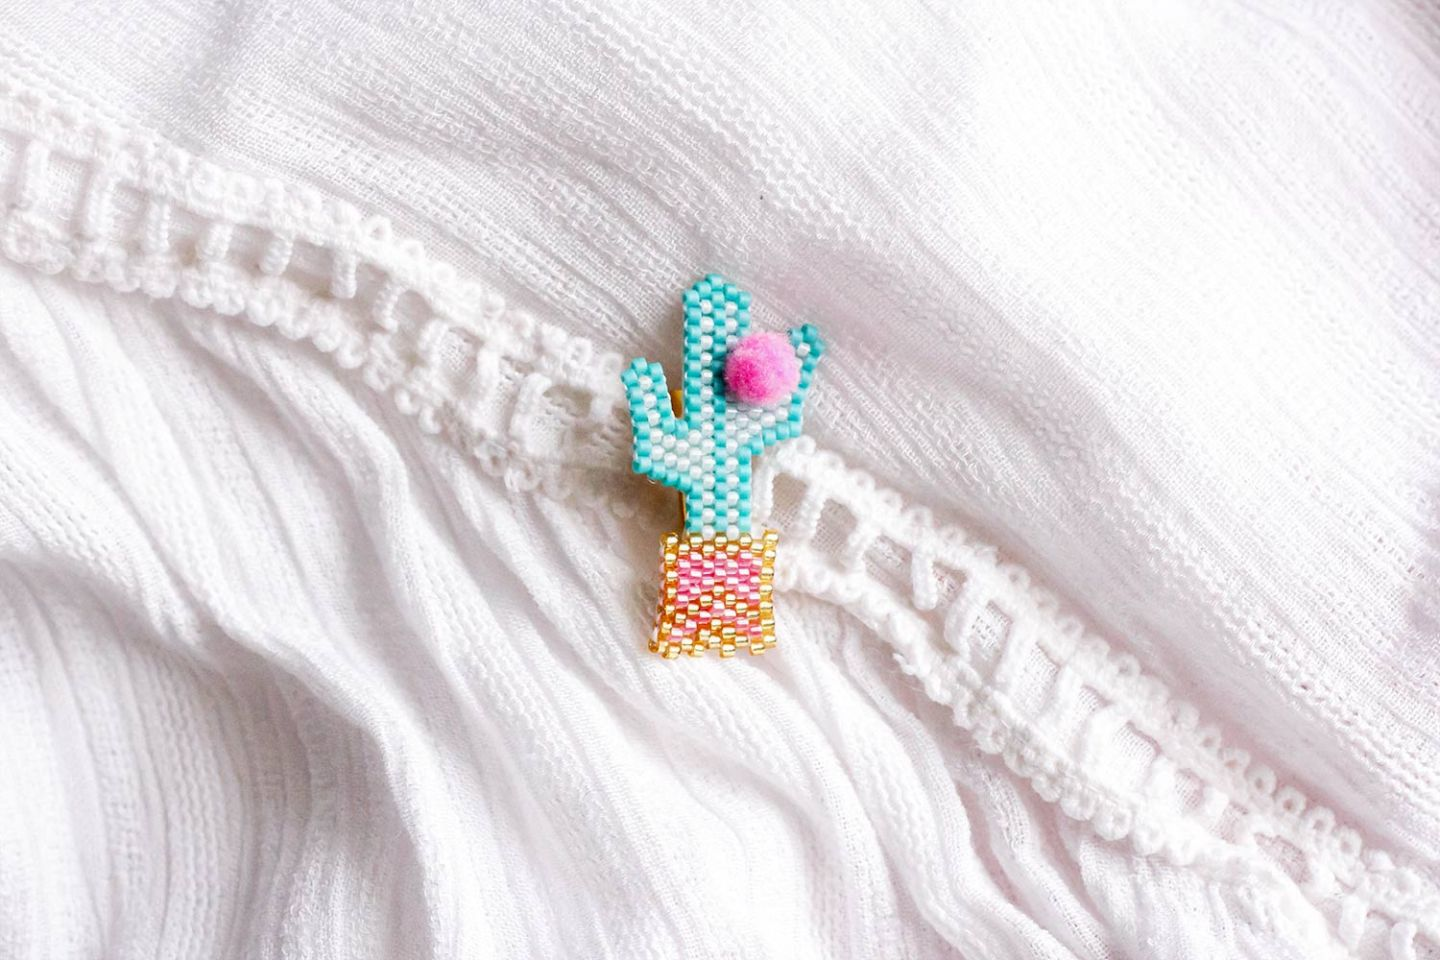 Broche cactus brick-stitch